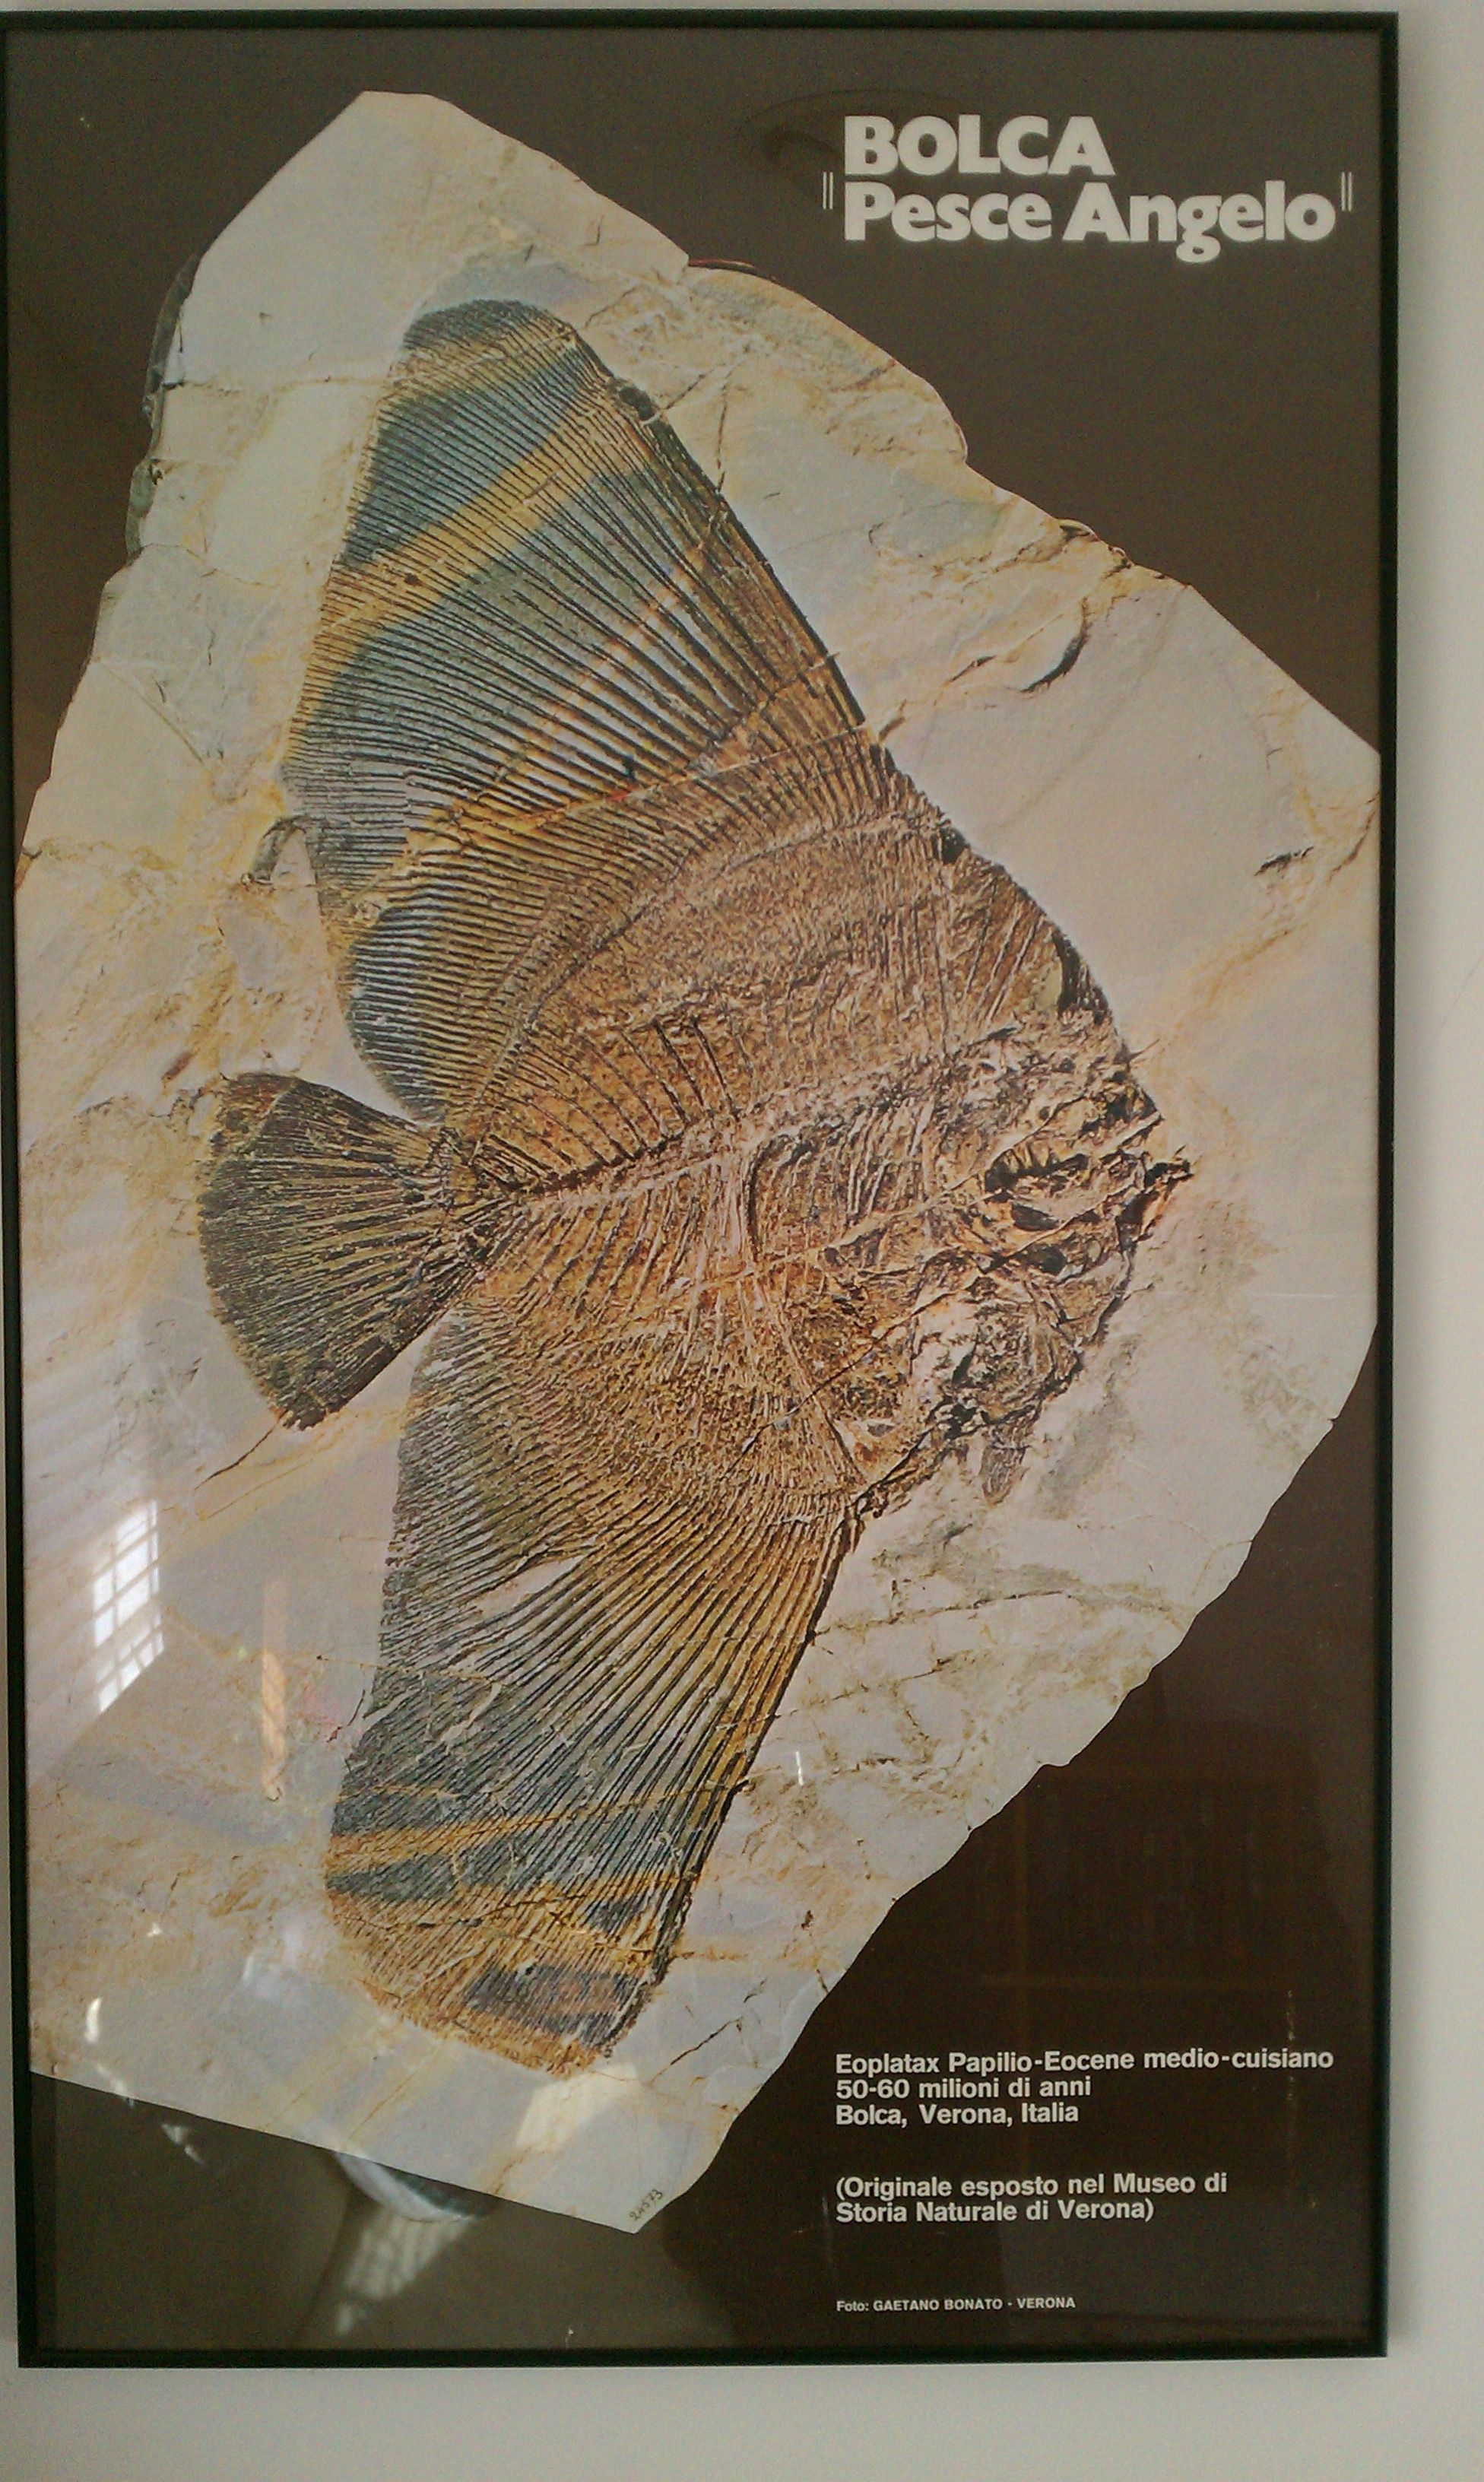 Previous Pinner Had This Print Of Very Famous Fossil Framed Went